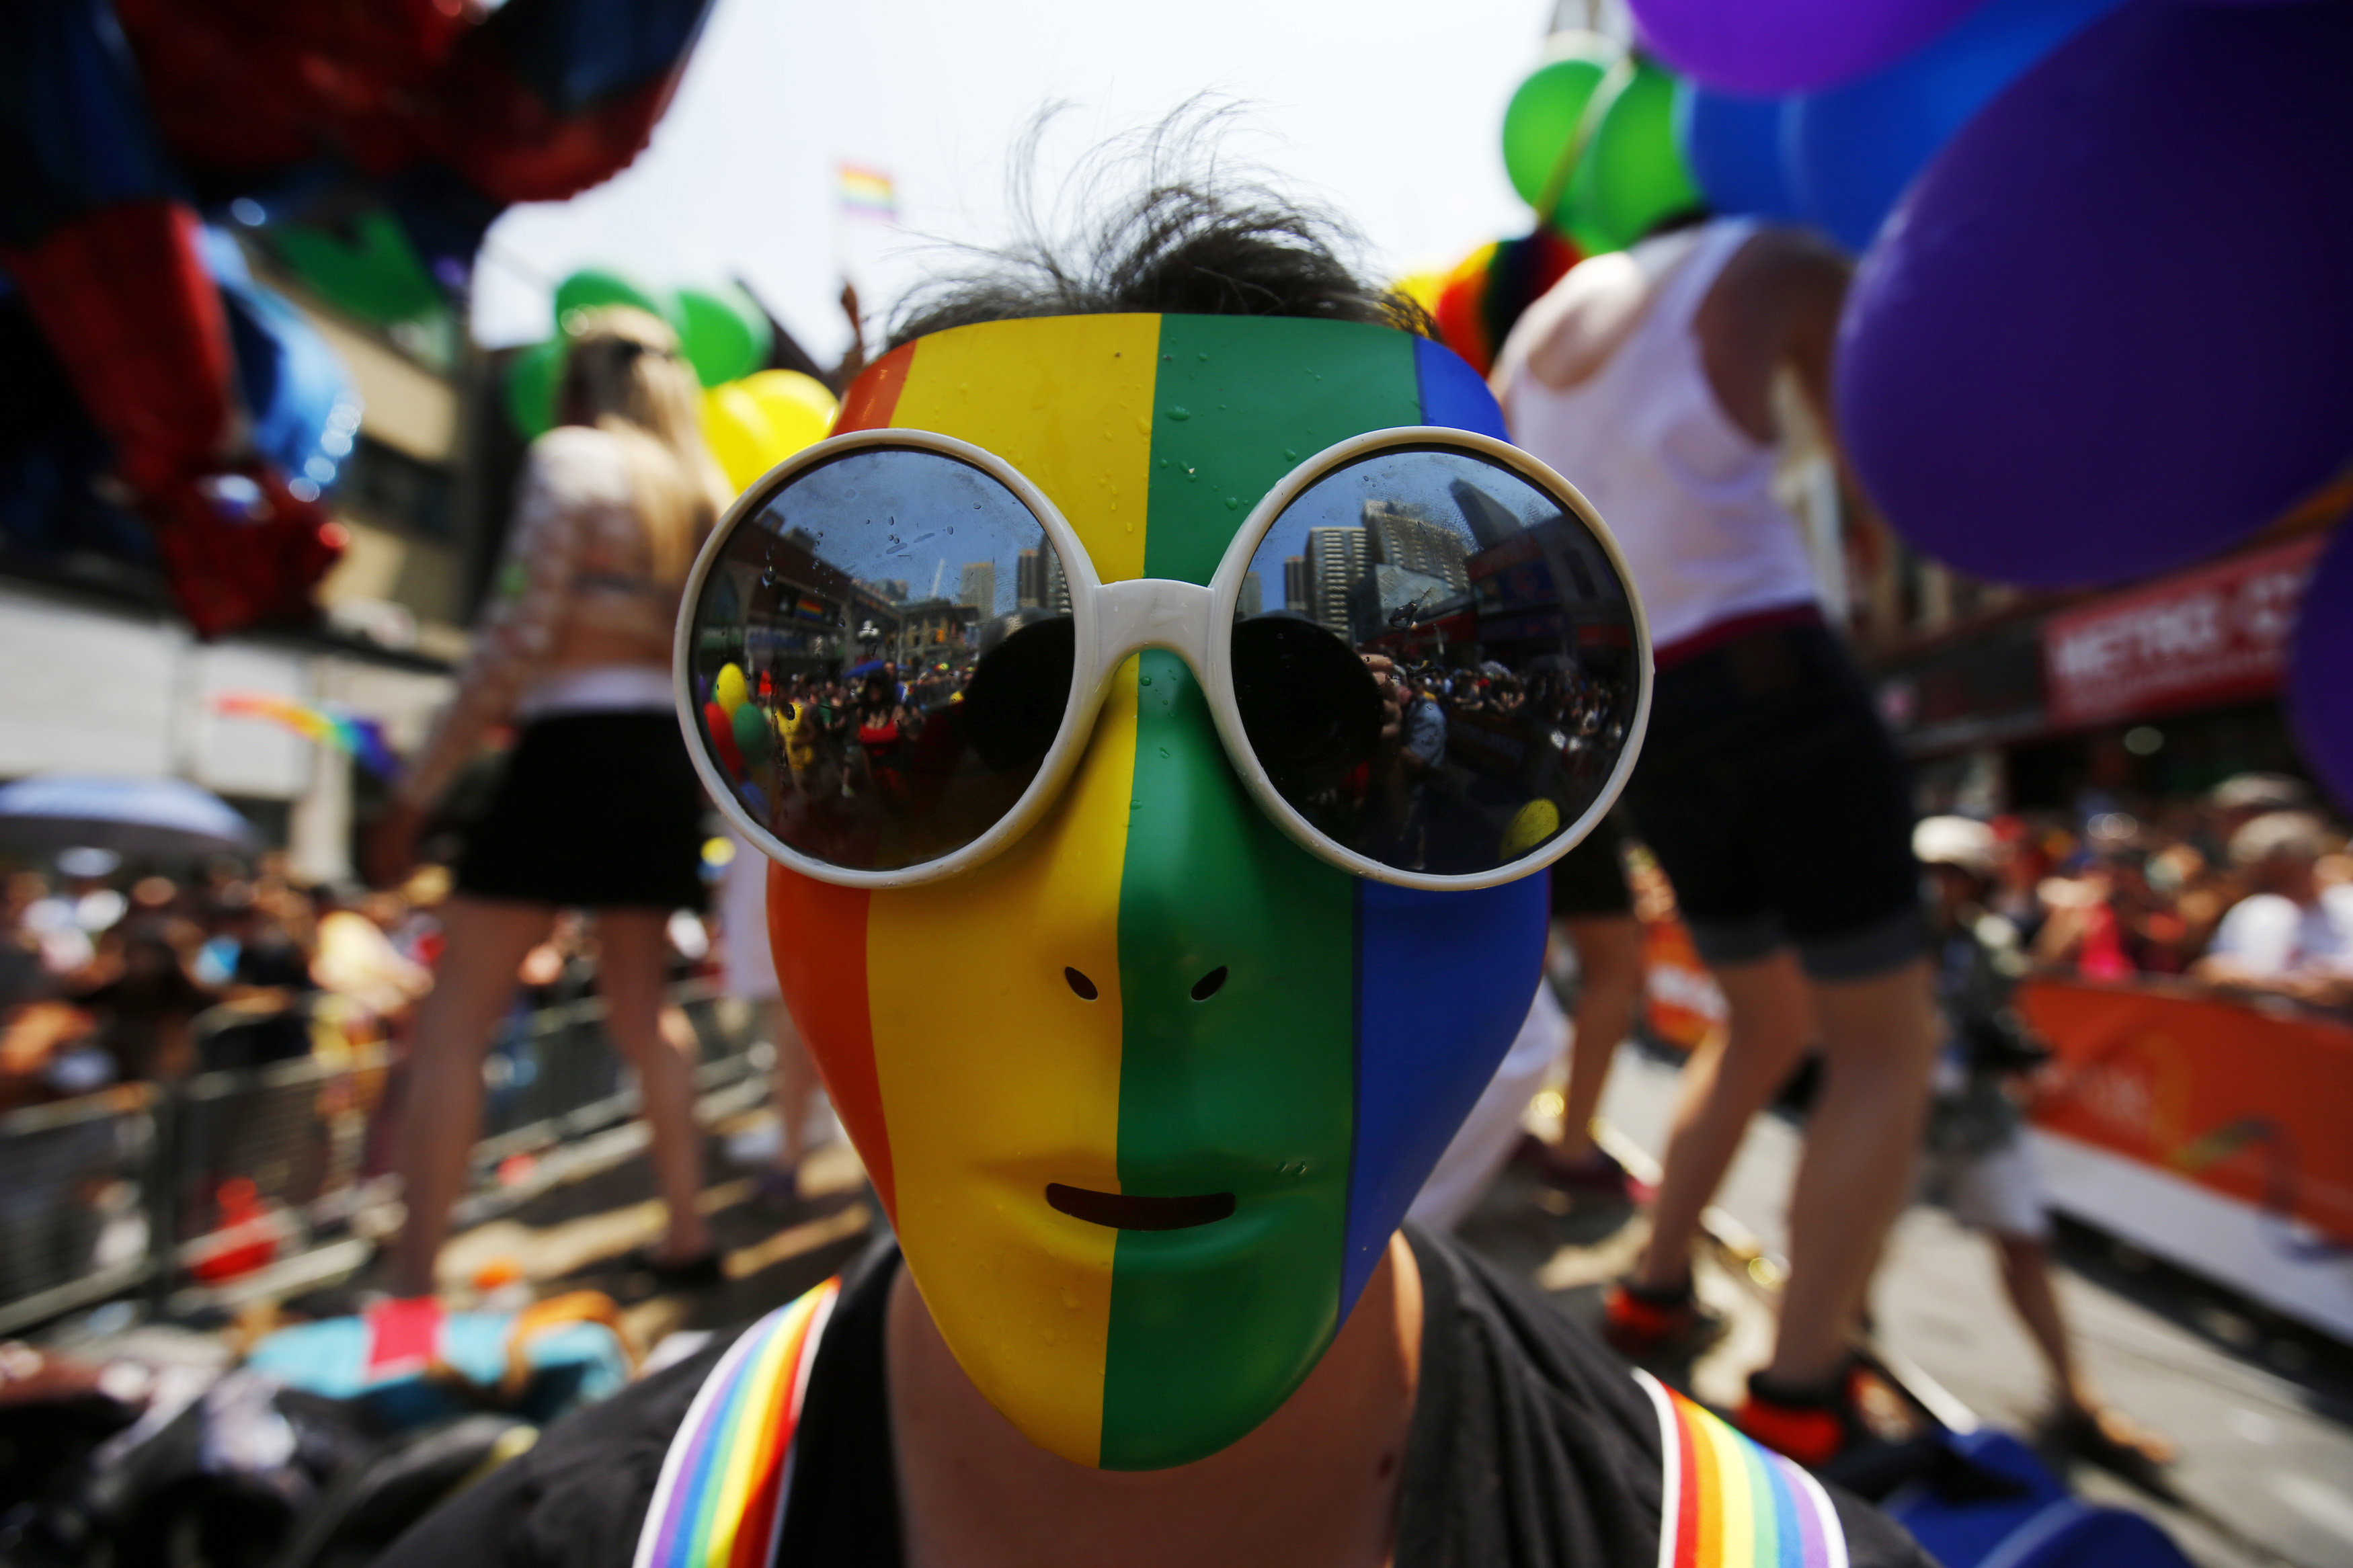 A man wearing a rainbow mask is seen during the  WorldPride  gay pride Parade in Toronto, Canada, June 29, 2014.